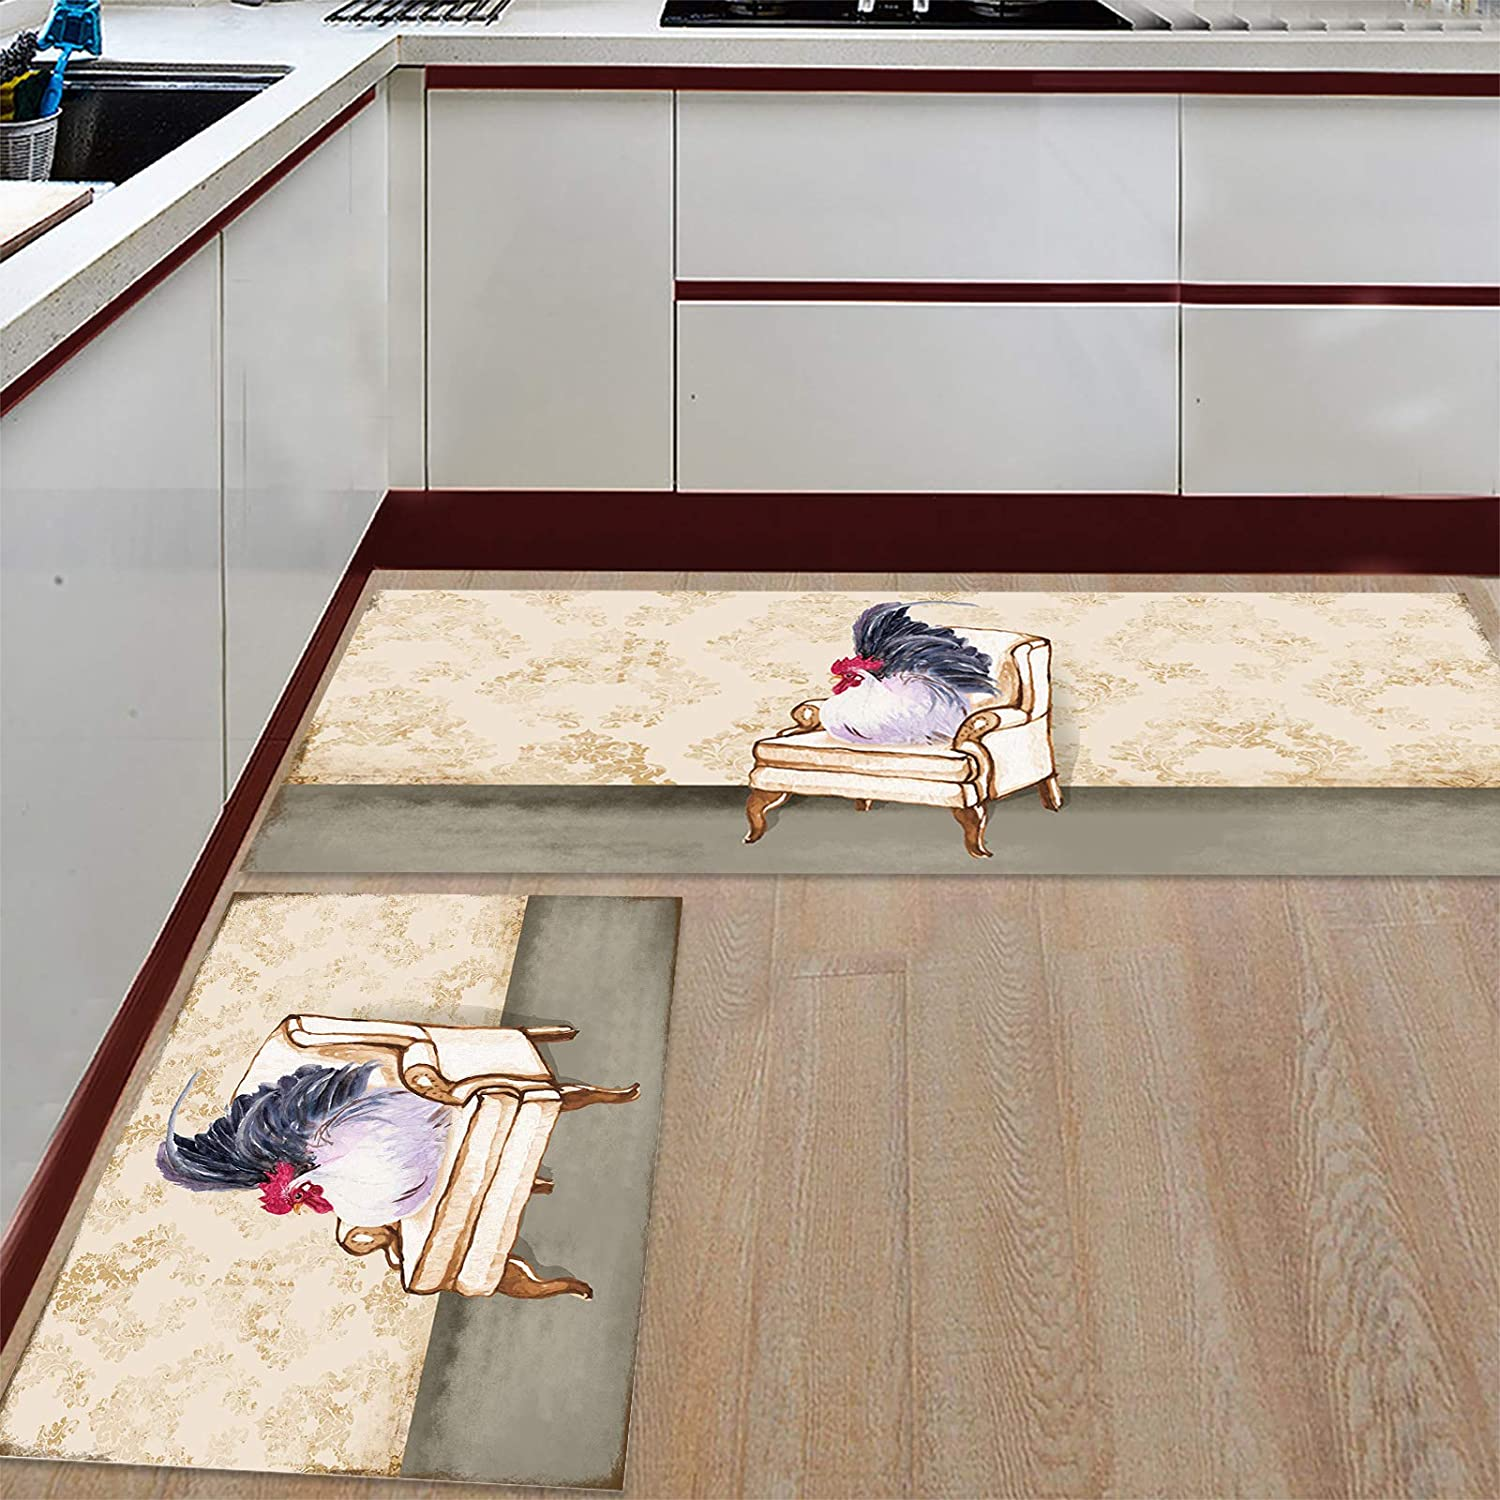 Prime Leader Kitchen Mat Fresno Mall and Rugs Set Seat on of Chicken Sofa Discount mail order 2